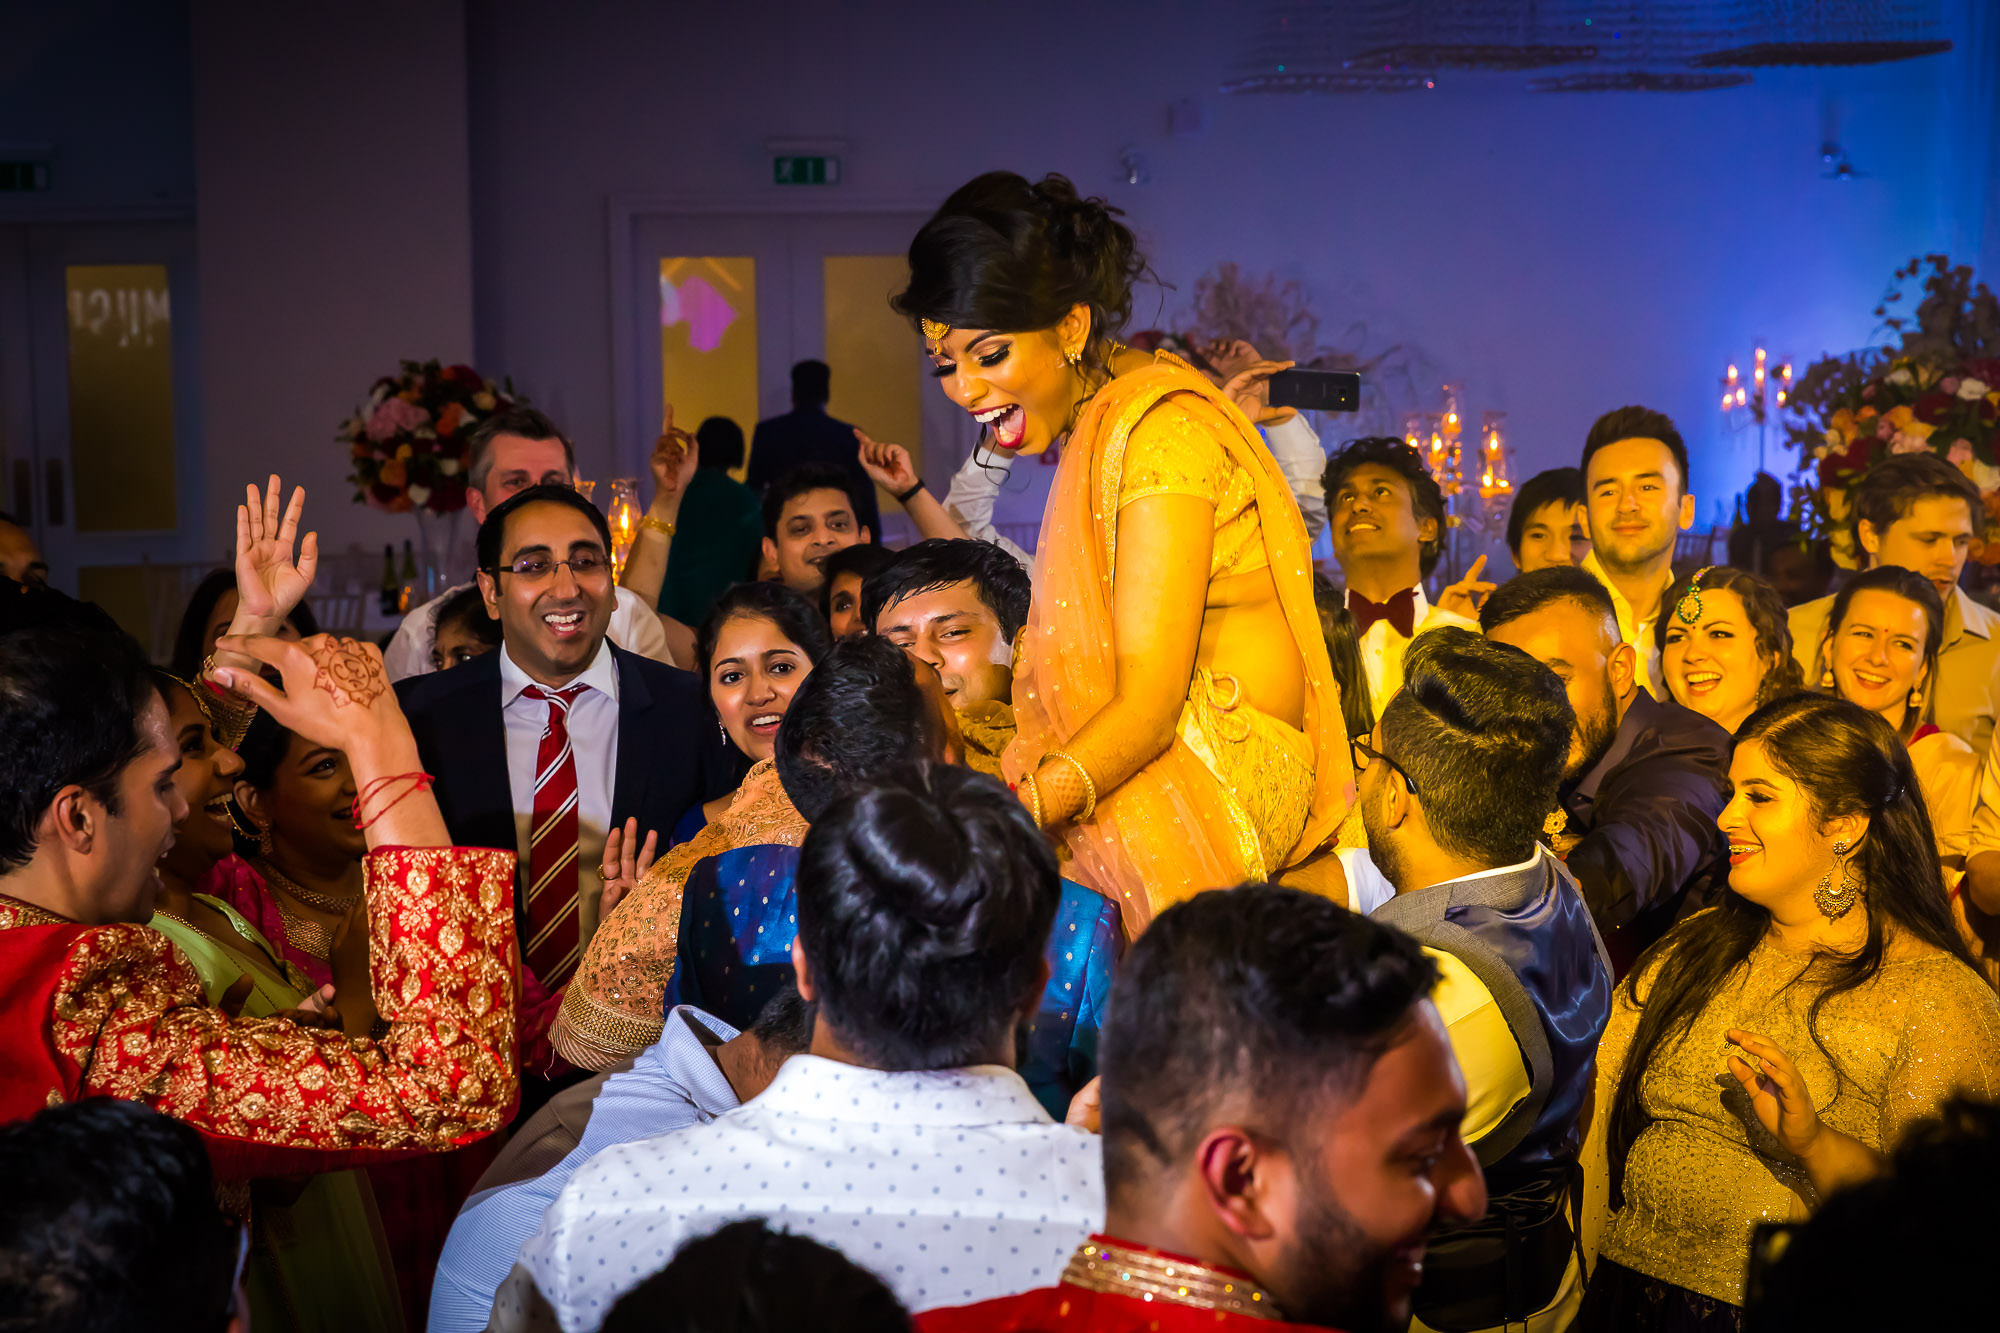 asian-wedding-hindu-tamil-photographer-heythorpe-oxford-0145.jpg